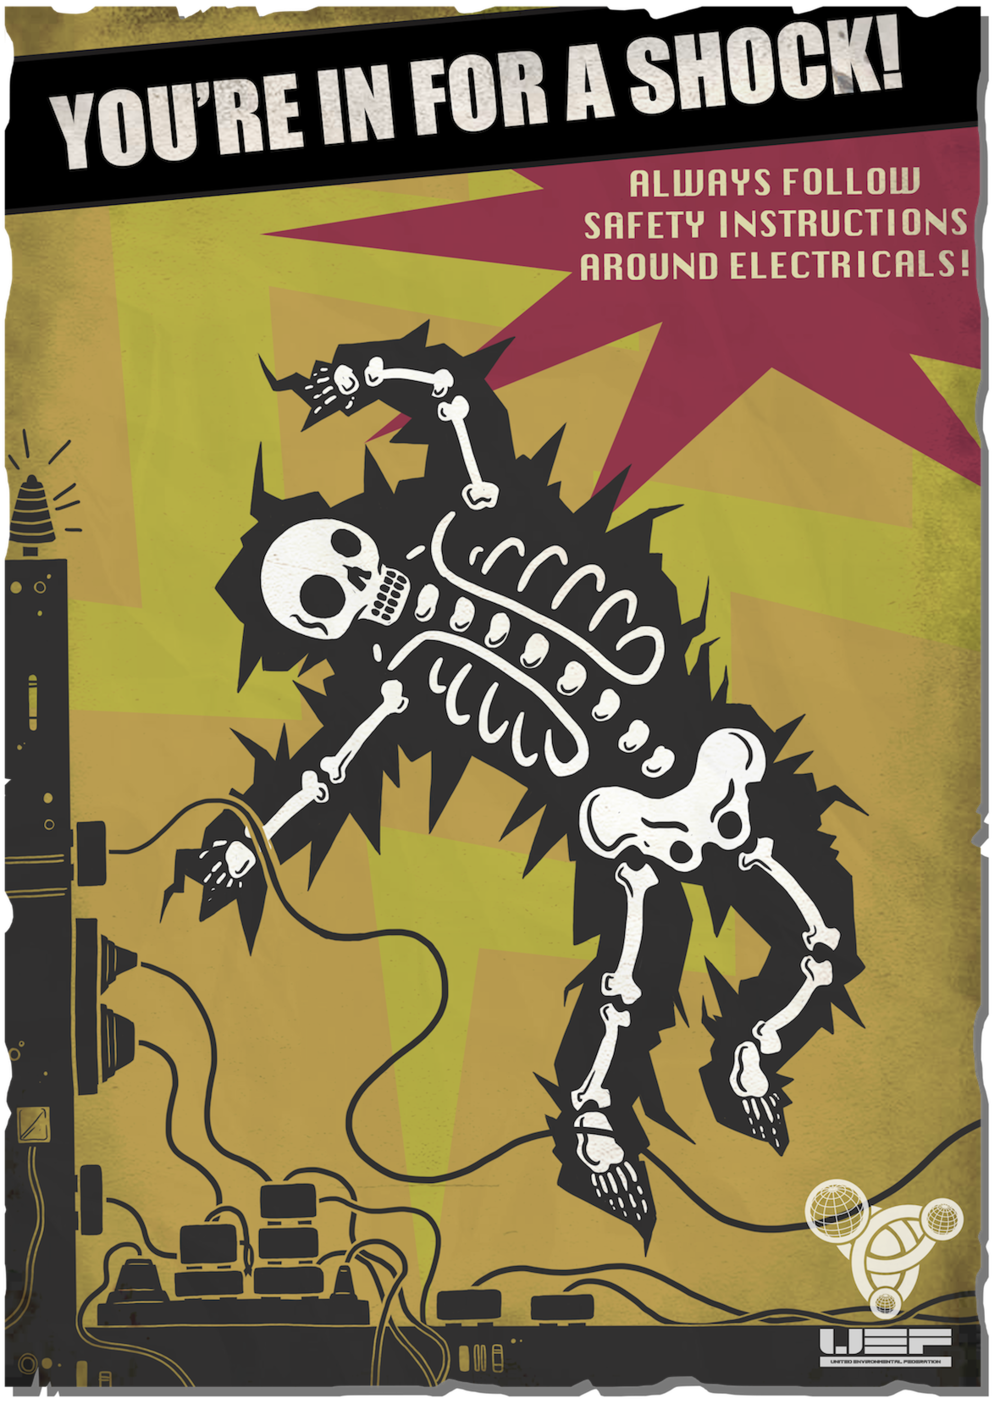 Electric_shock_poster_new copy.png